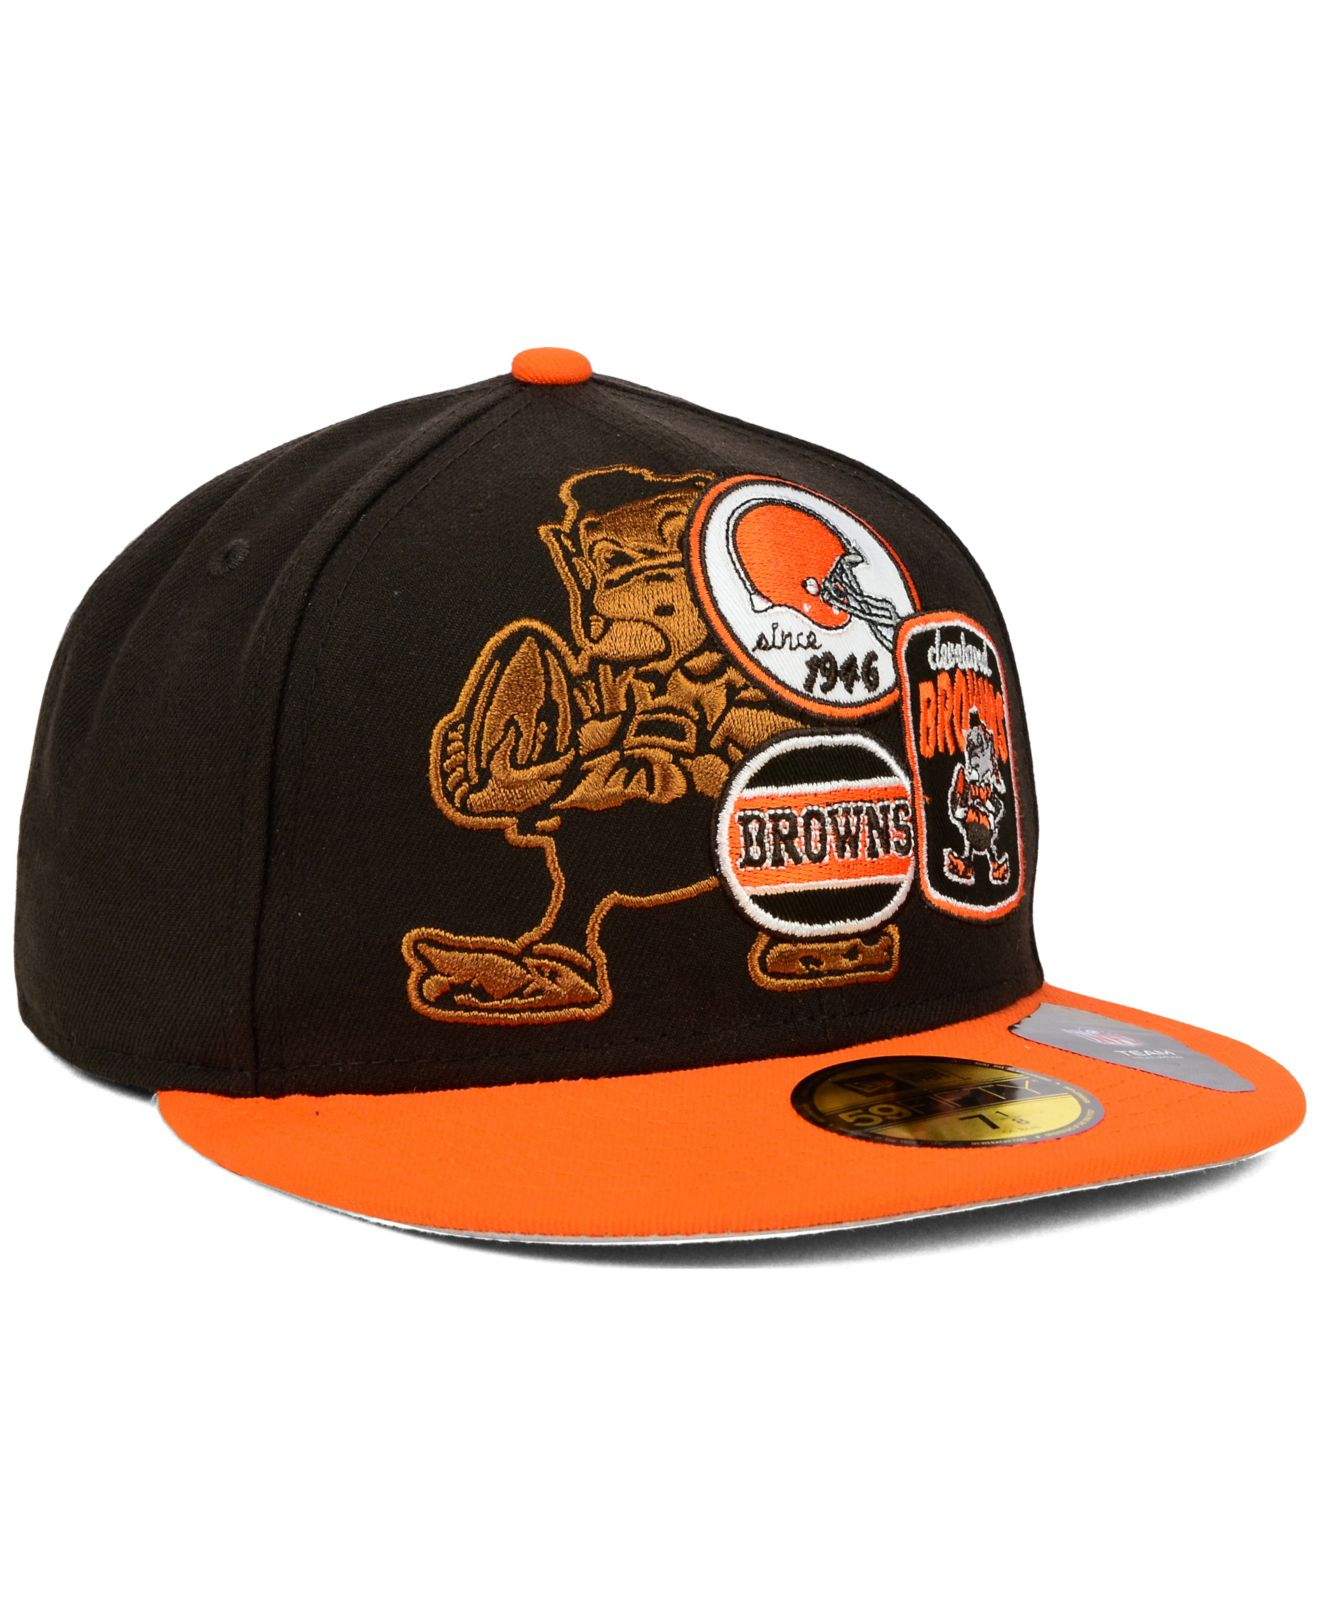 Men's Cleveland Browns Historic Logo New Era Brown NFL Draft 59FIFTY Reflective Fitted Hat